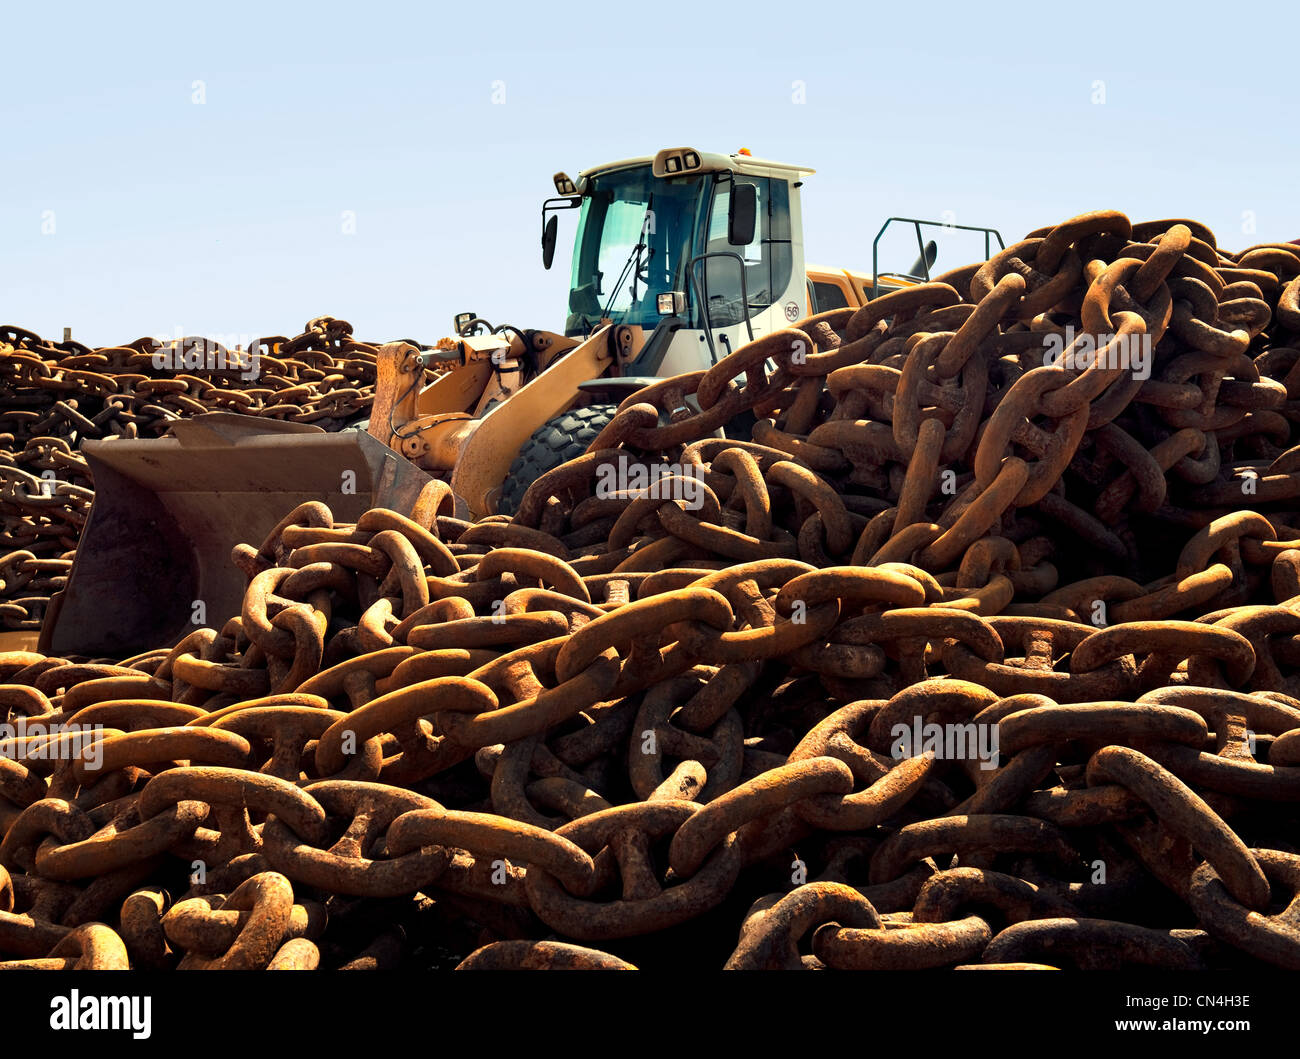 Rusted chains and excavator in scrap yard - Stock Image